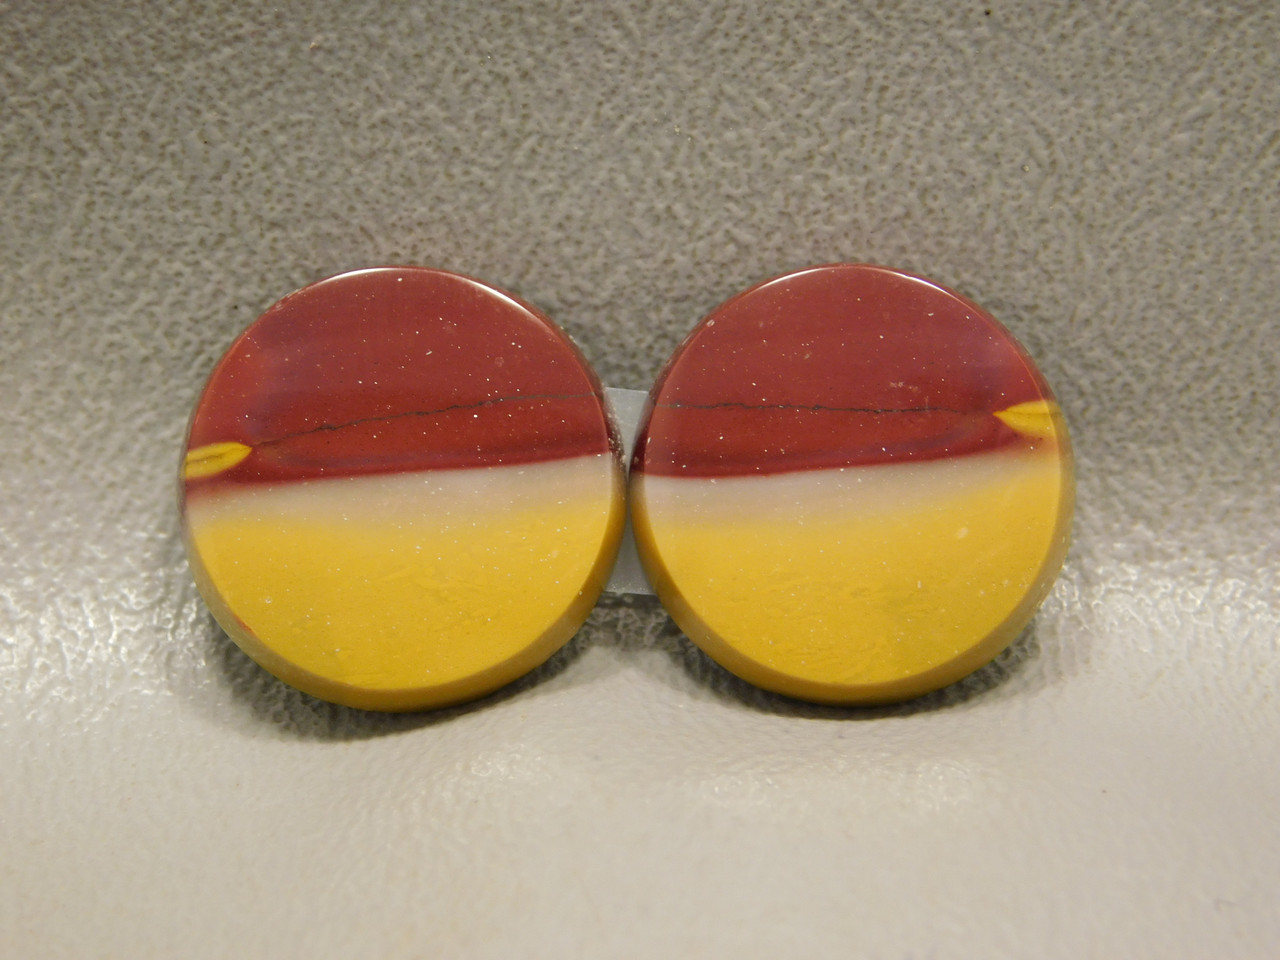 Mookaite Cabochons Mook Jasper Matched Pairs 18 mm Rounds #6